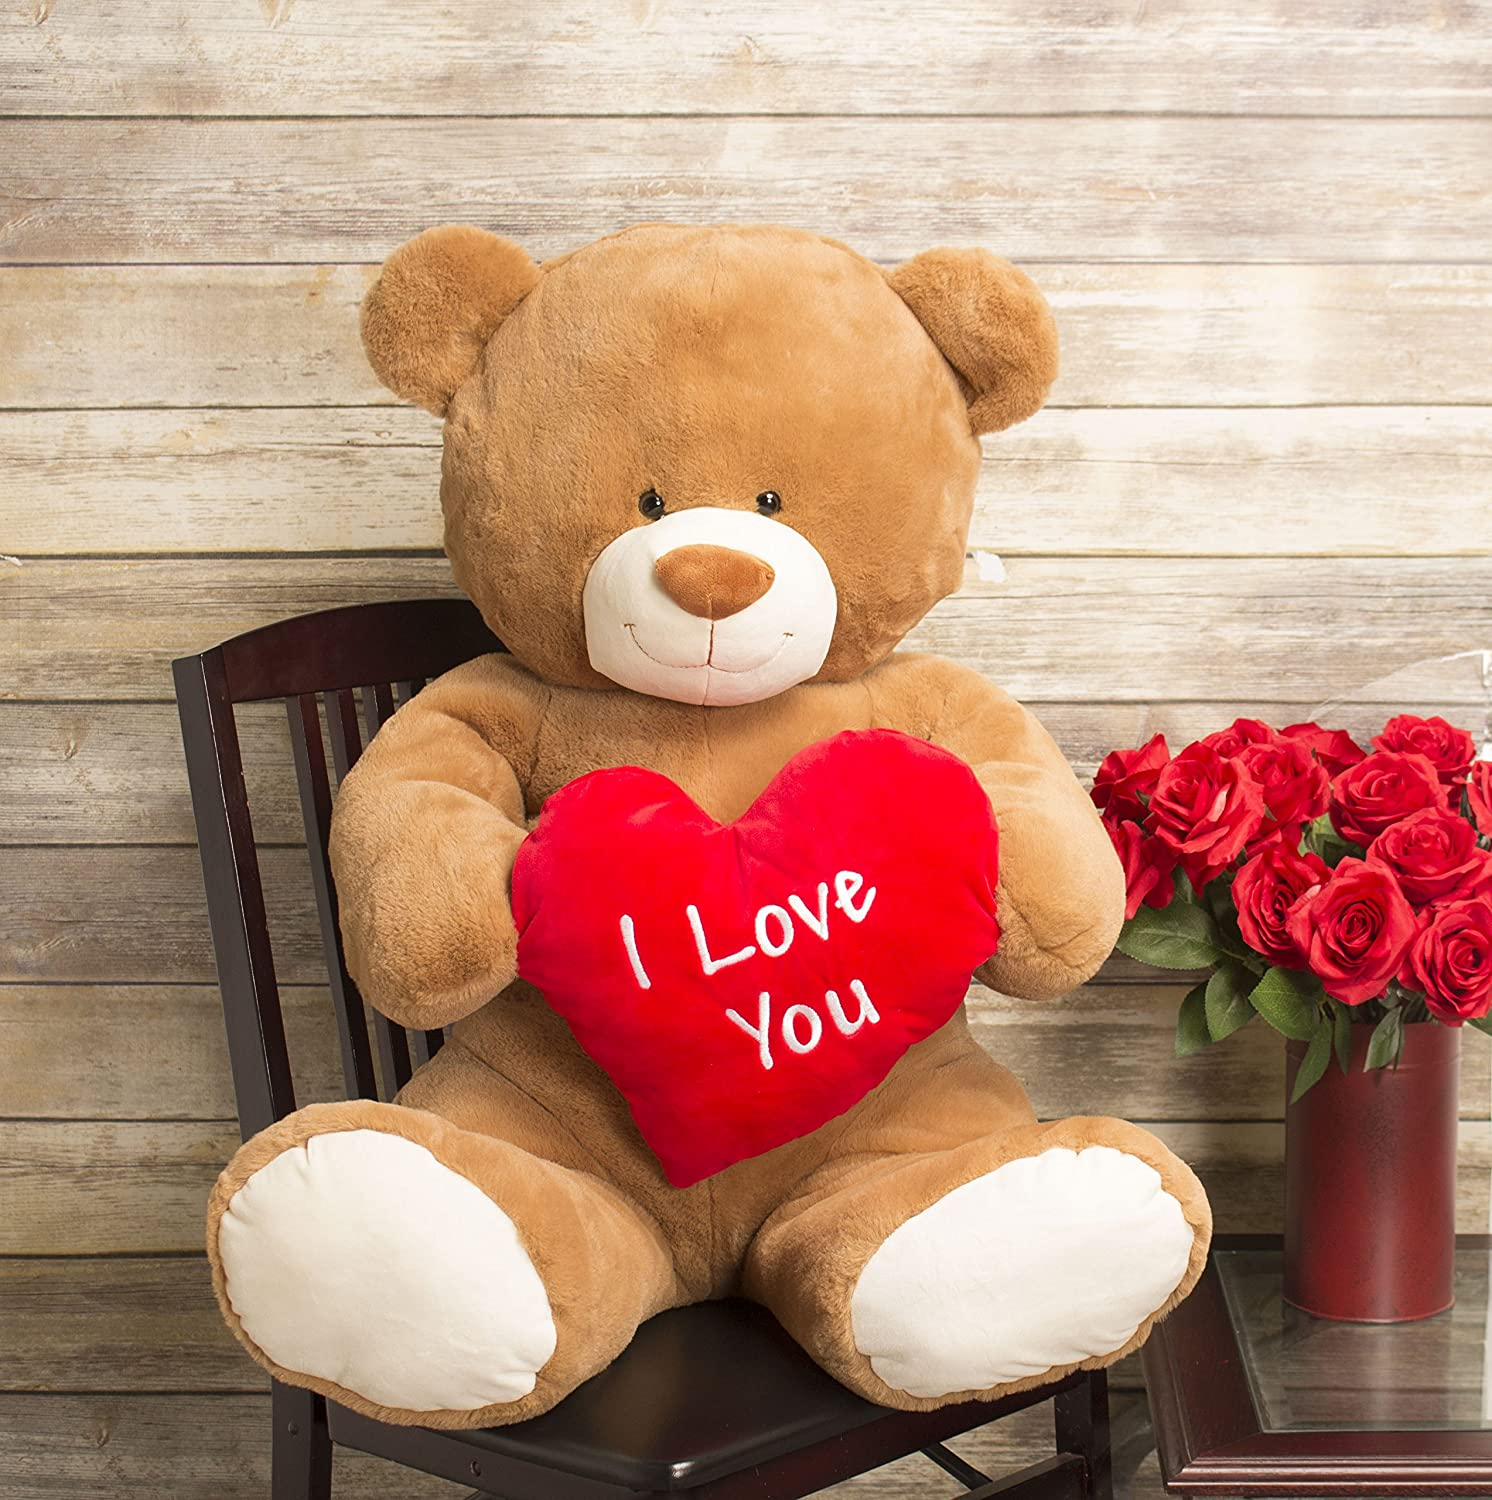 Amazon valentines day jumbo 35 plush i love you teddy bear amazon valentines day jumbo 35 plush i love you teddy bear gitzy toys games altavistaventures Images